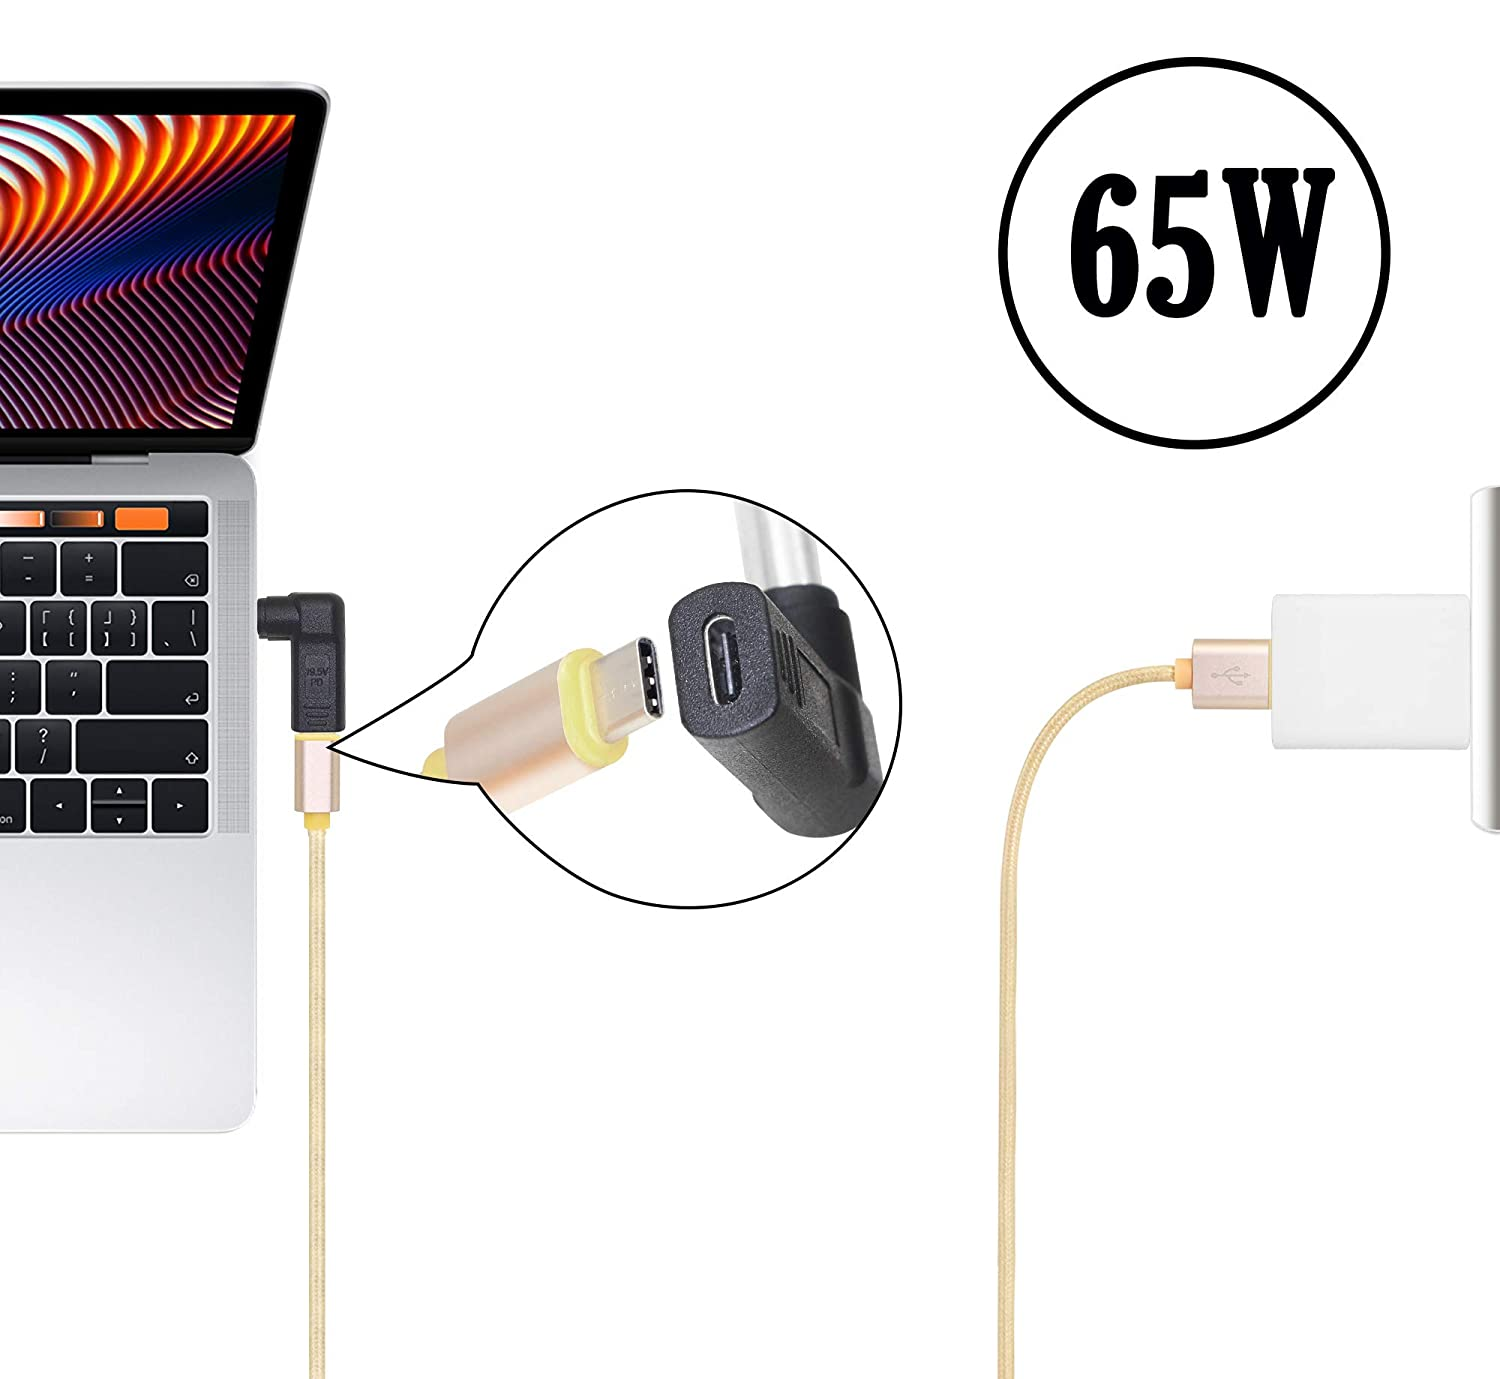 Power Charging Cable Compatible for Dell Latitude E6420 E6430 E6430s E6430U E6440 E6500 E6510 65W PD USB Type C Male Input to DC 7.4mm x 5.0mm Male 7.4mm x 0.6mm 3.3 FT